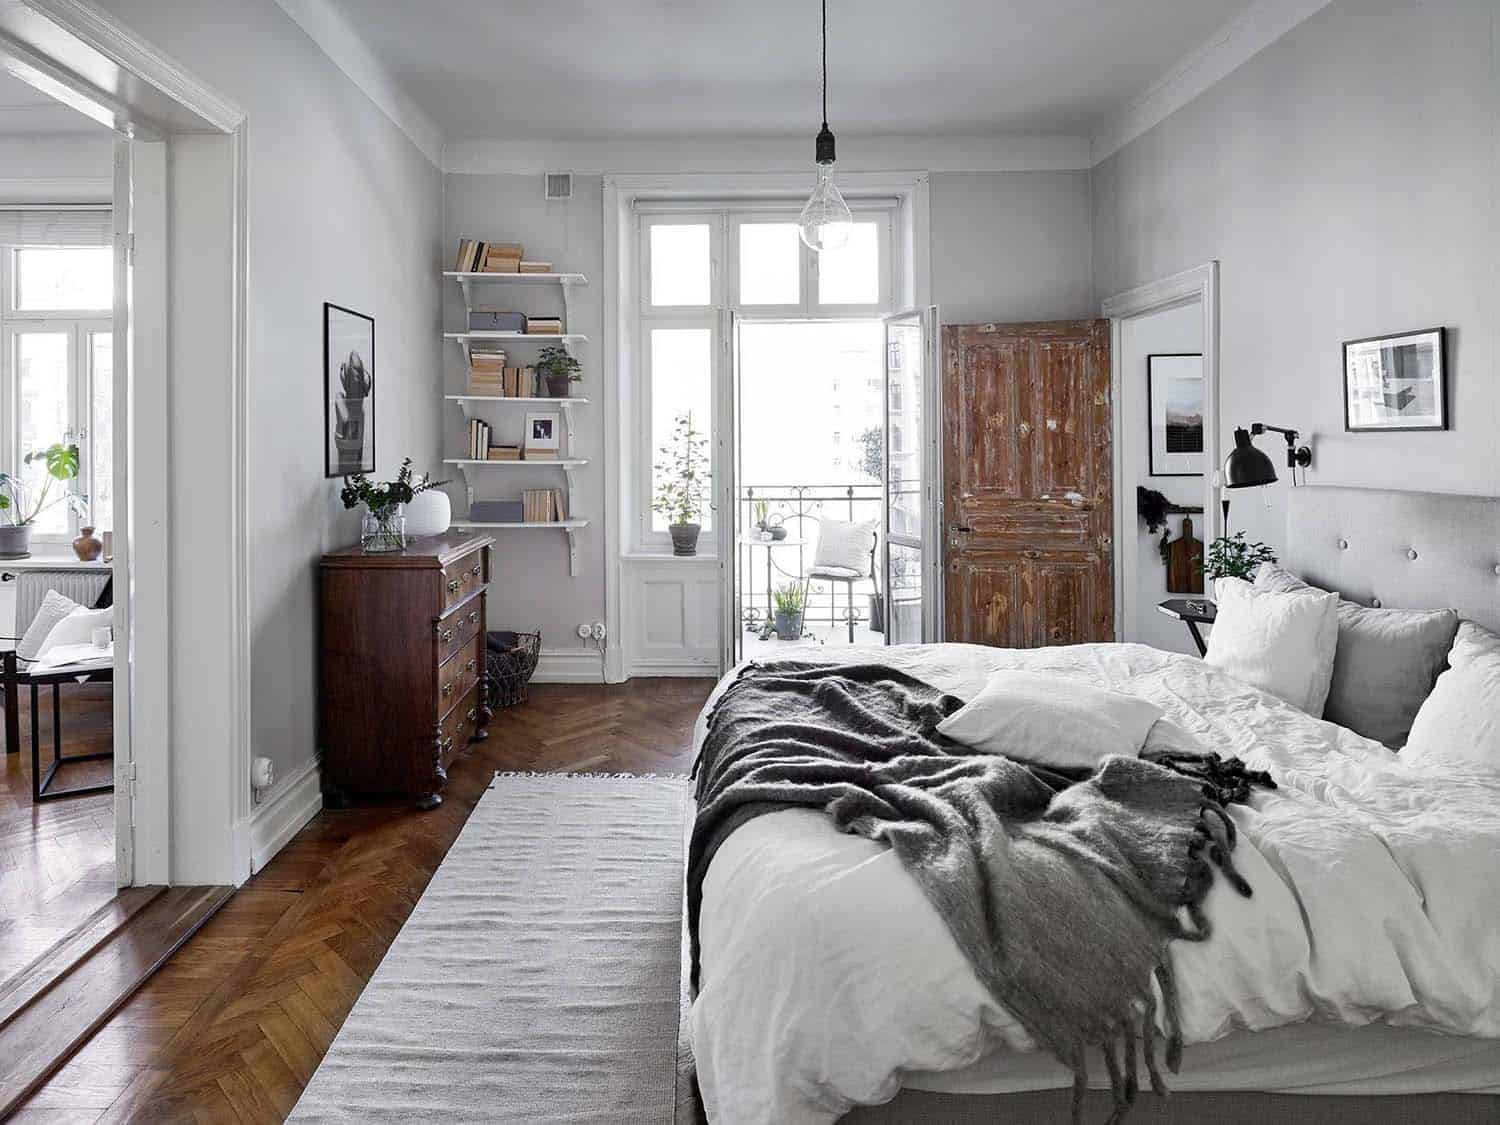 Pictures Of Cozy Bedrooms 33 Ultra Cozy Bedroom Decorating Ideas For Winter Warmth